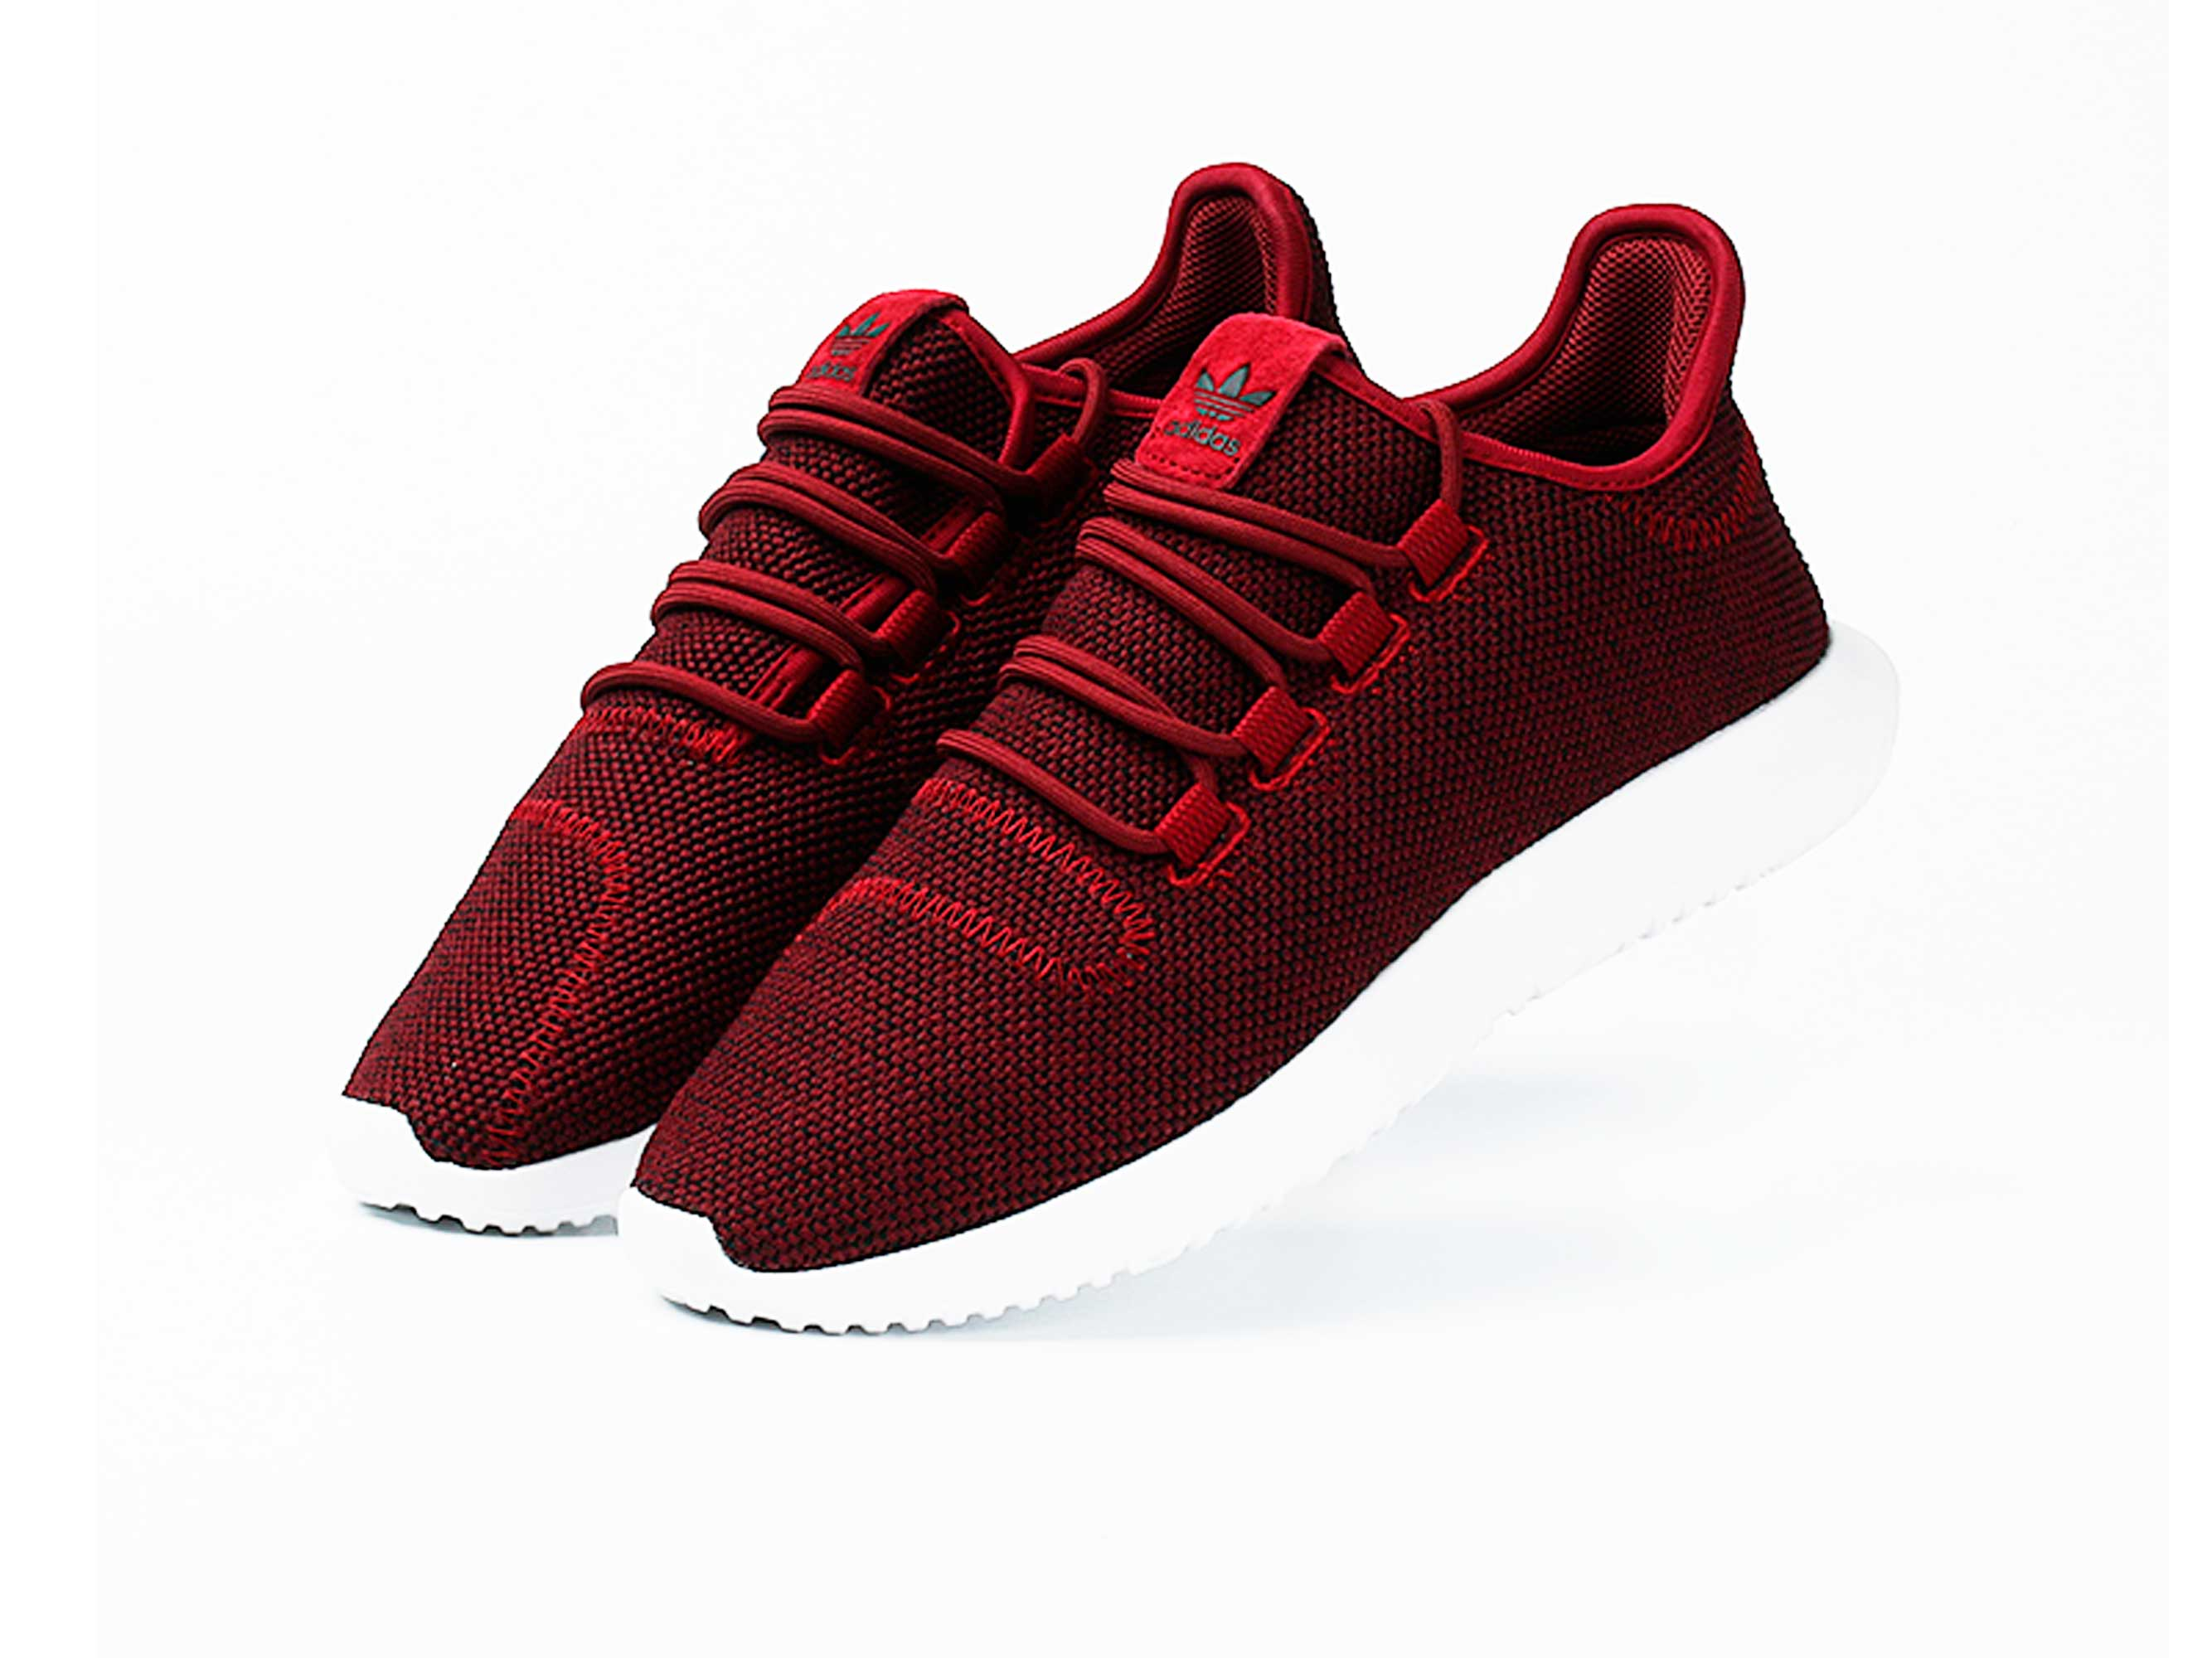 new concept 2b8f9 646a9 adidas tubular shadow red